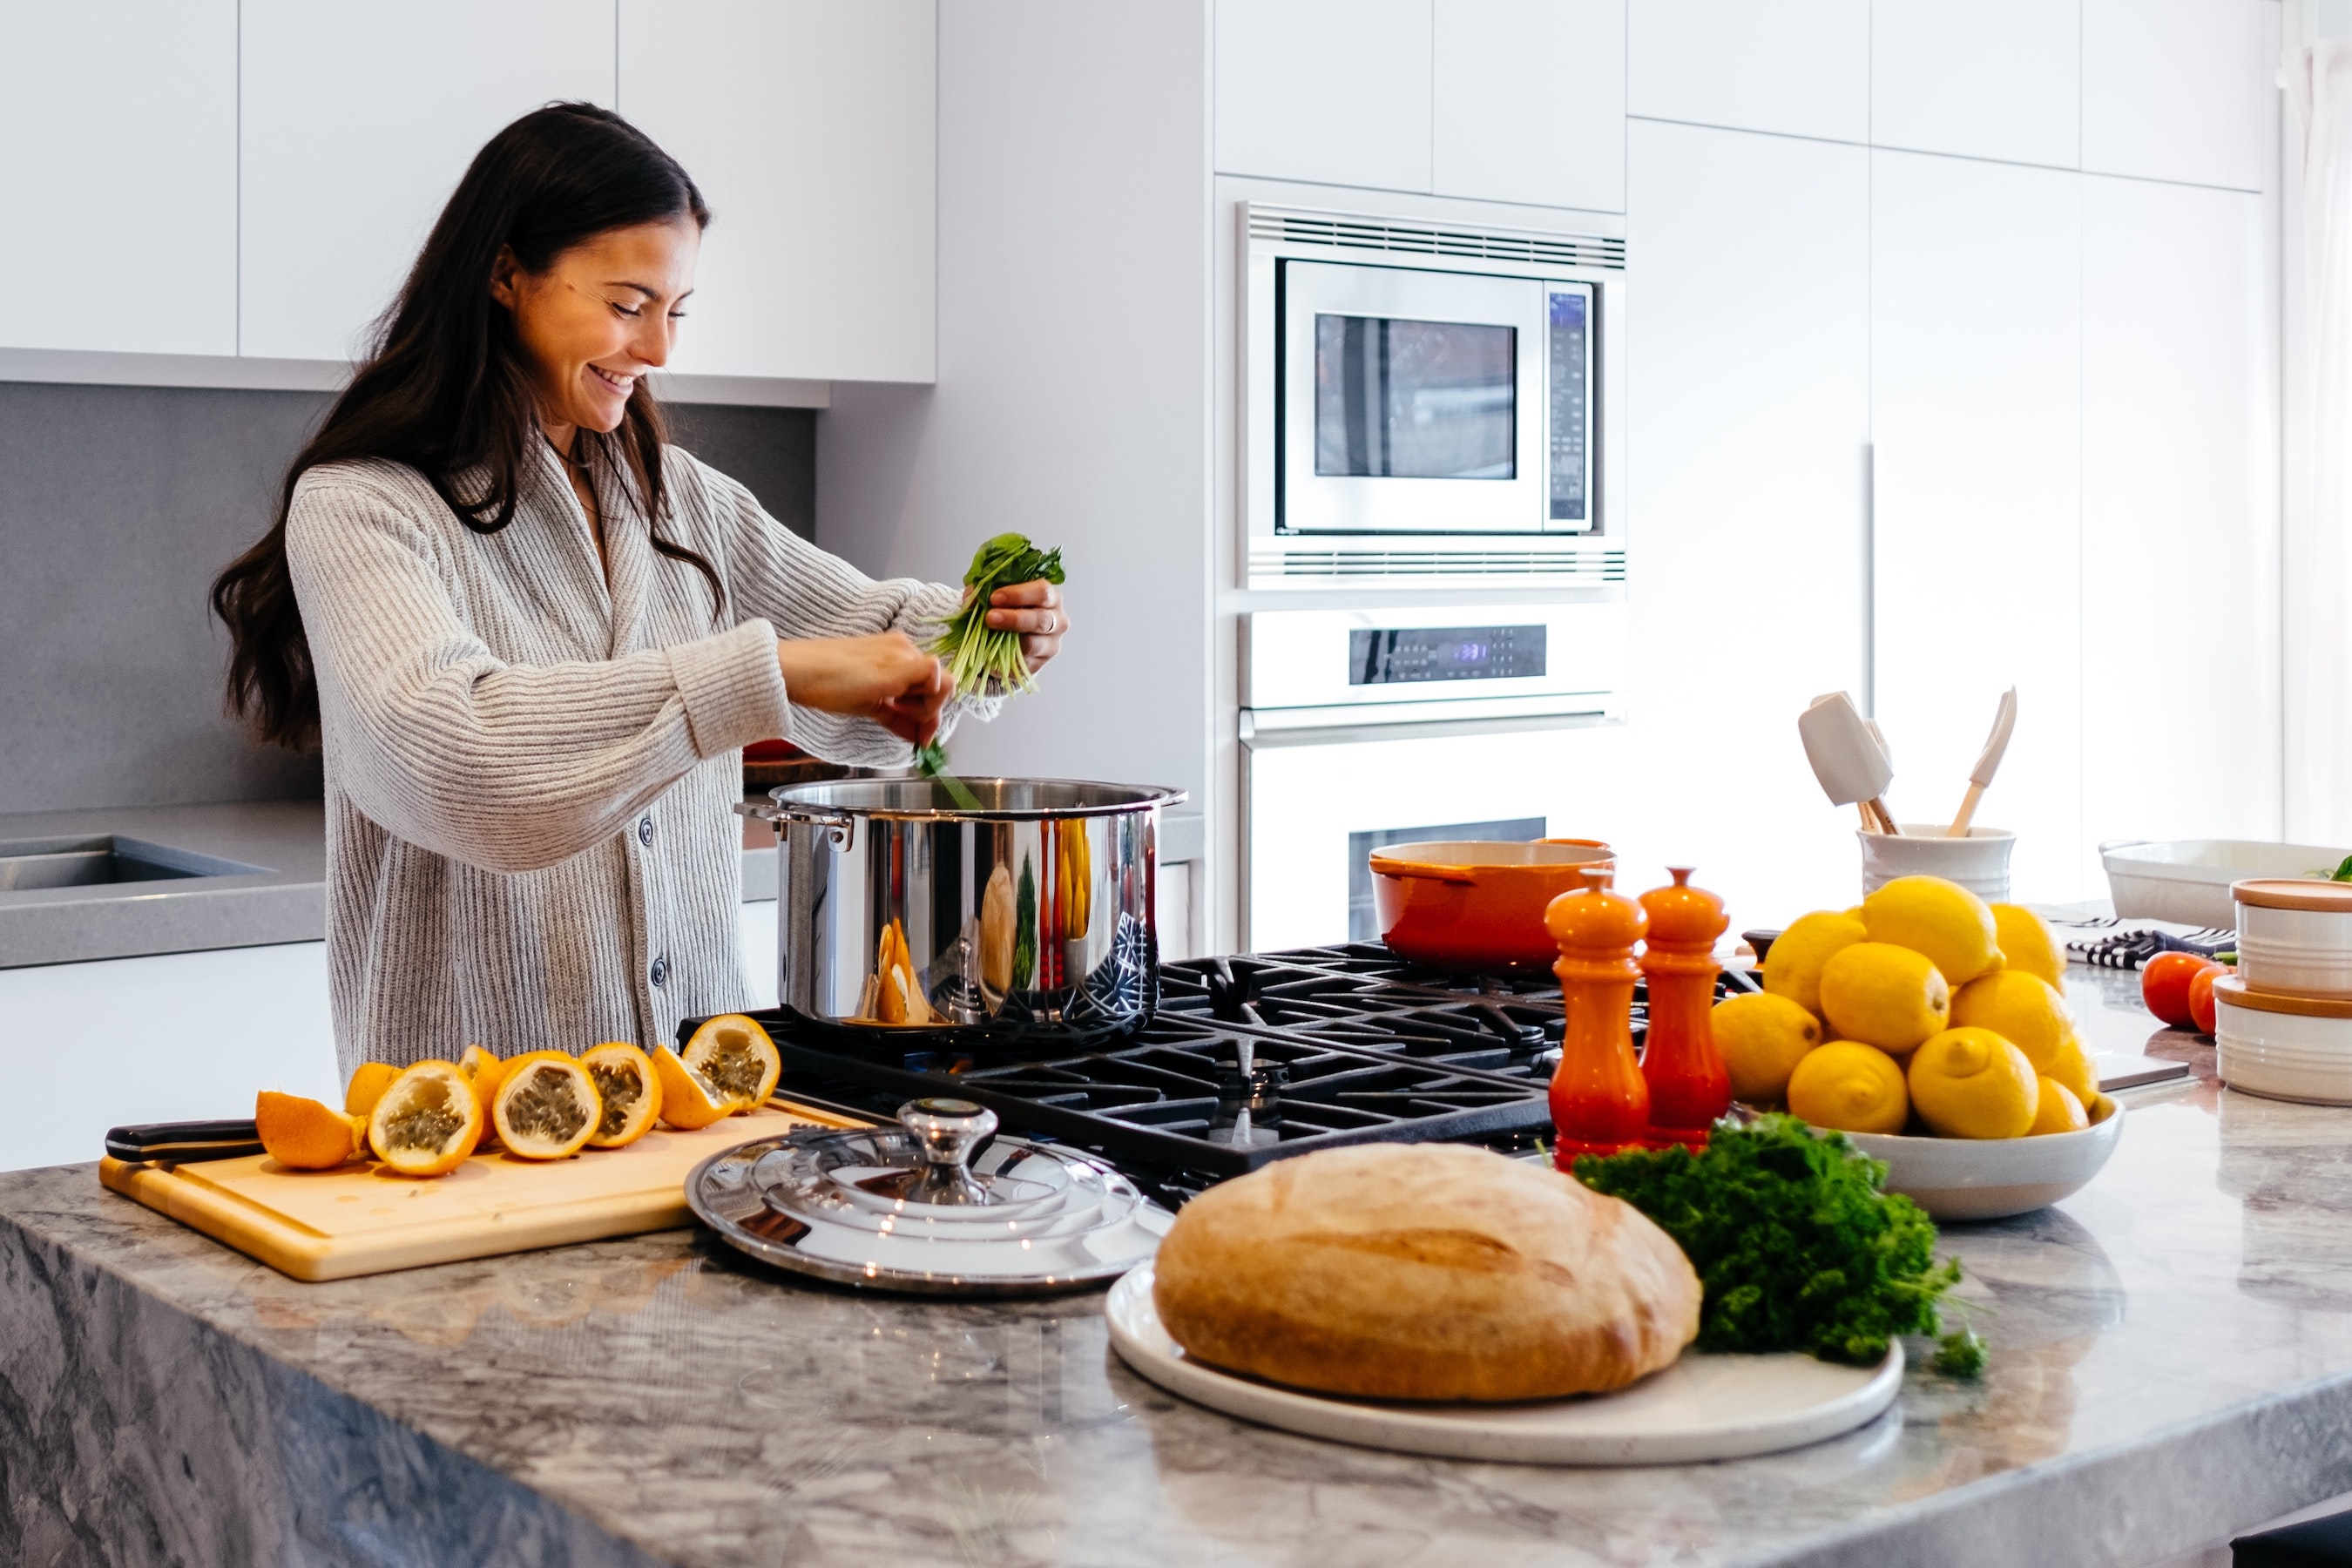 In a bright kitchen with marble countertops, a smiling caucasian woman with dark brown hair adds fresh greens to stockpot